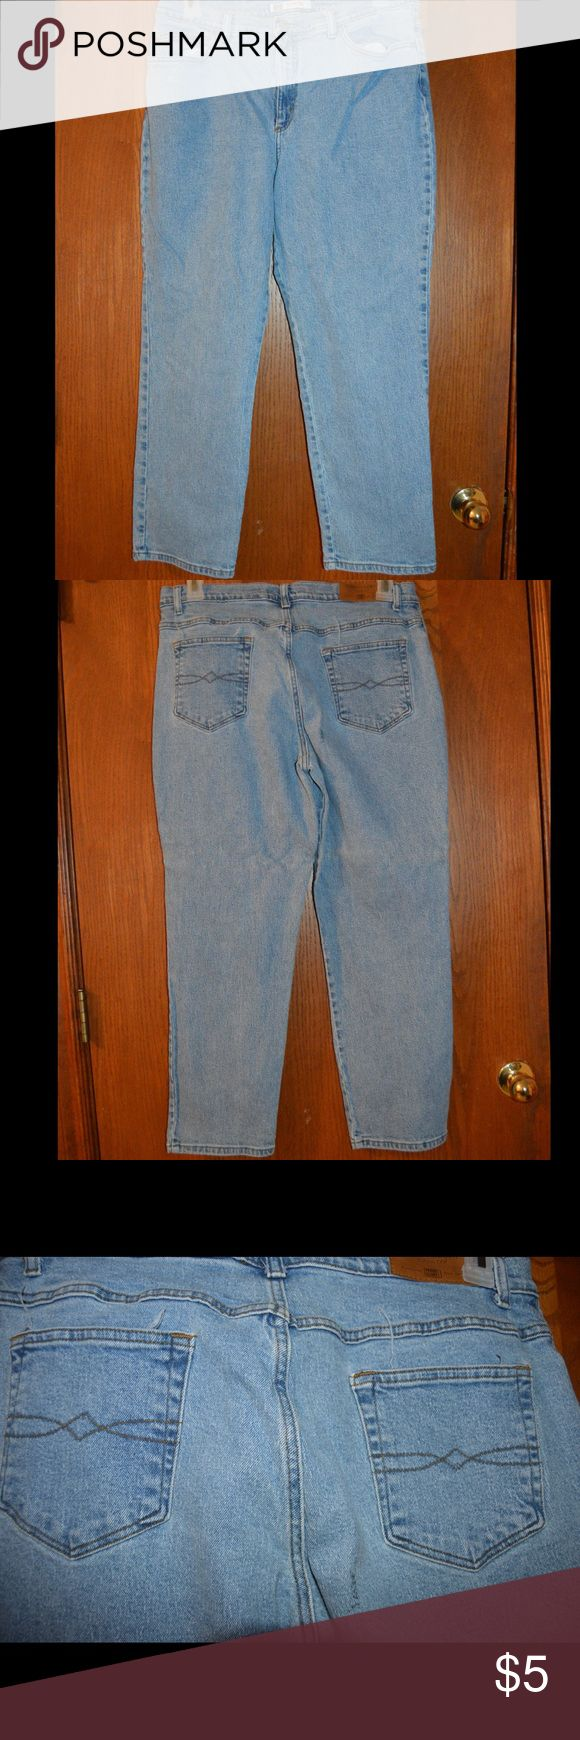 "Faded Glory jeans 98% cotton 2% spandex, FG stretch blue jeans in good condition. No holes in pockets or jeans. Inseam measured 27"". Was $12 now $5. #67 Faded Glory Jeans"